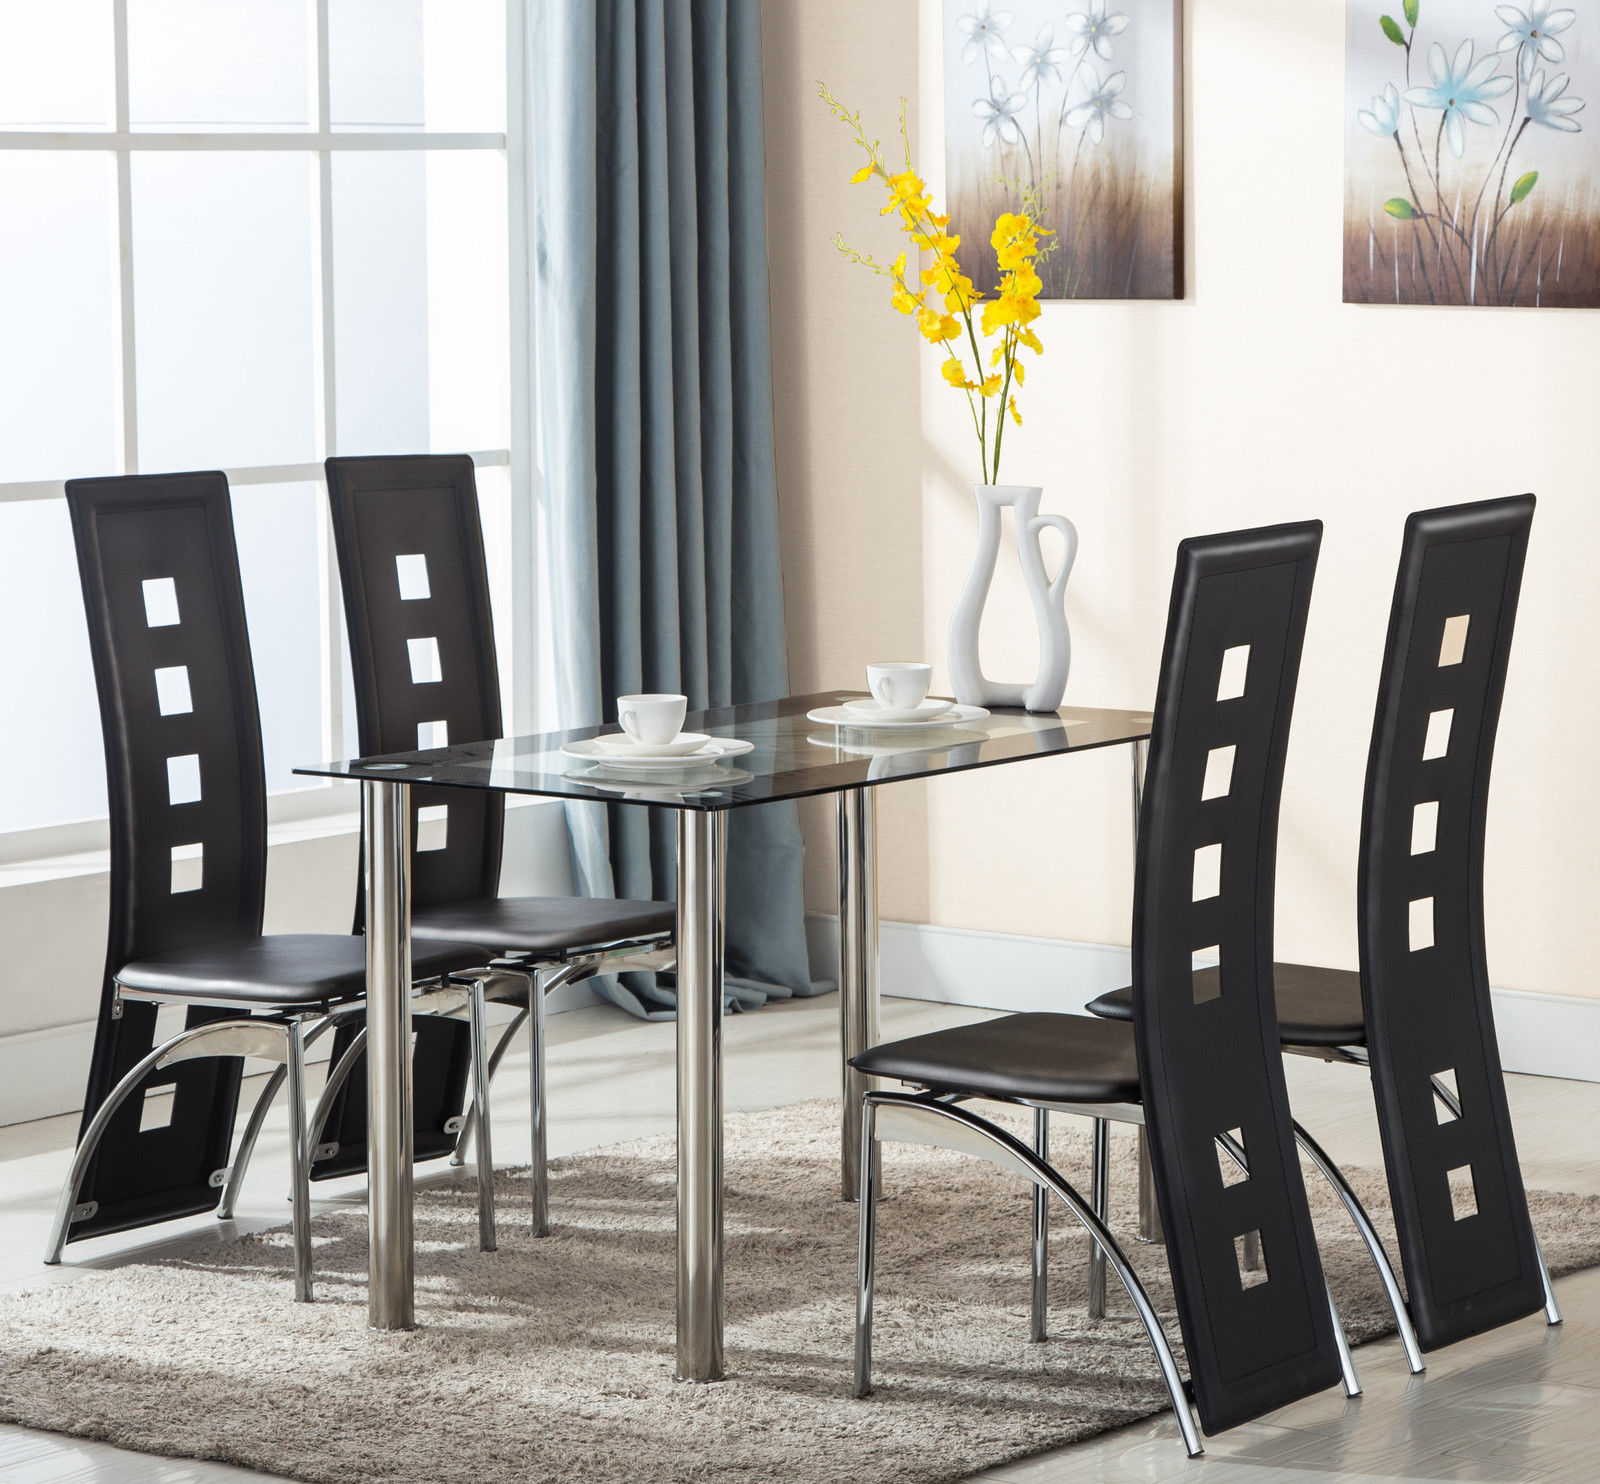 Details about 5 Piece Tempered Glass Dining Table and Chairs Set Kitchen  Furniture Black